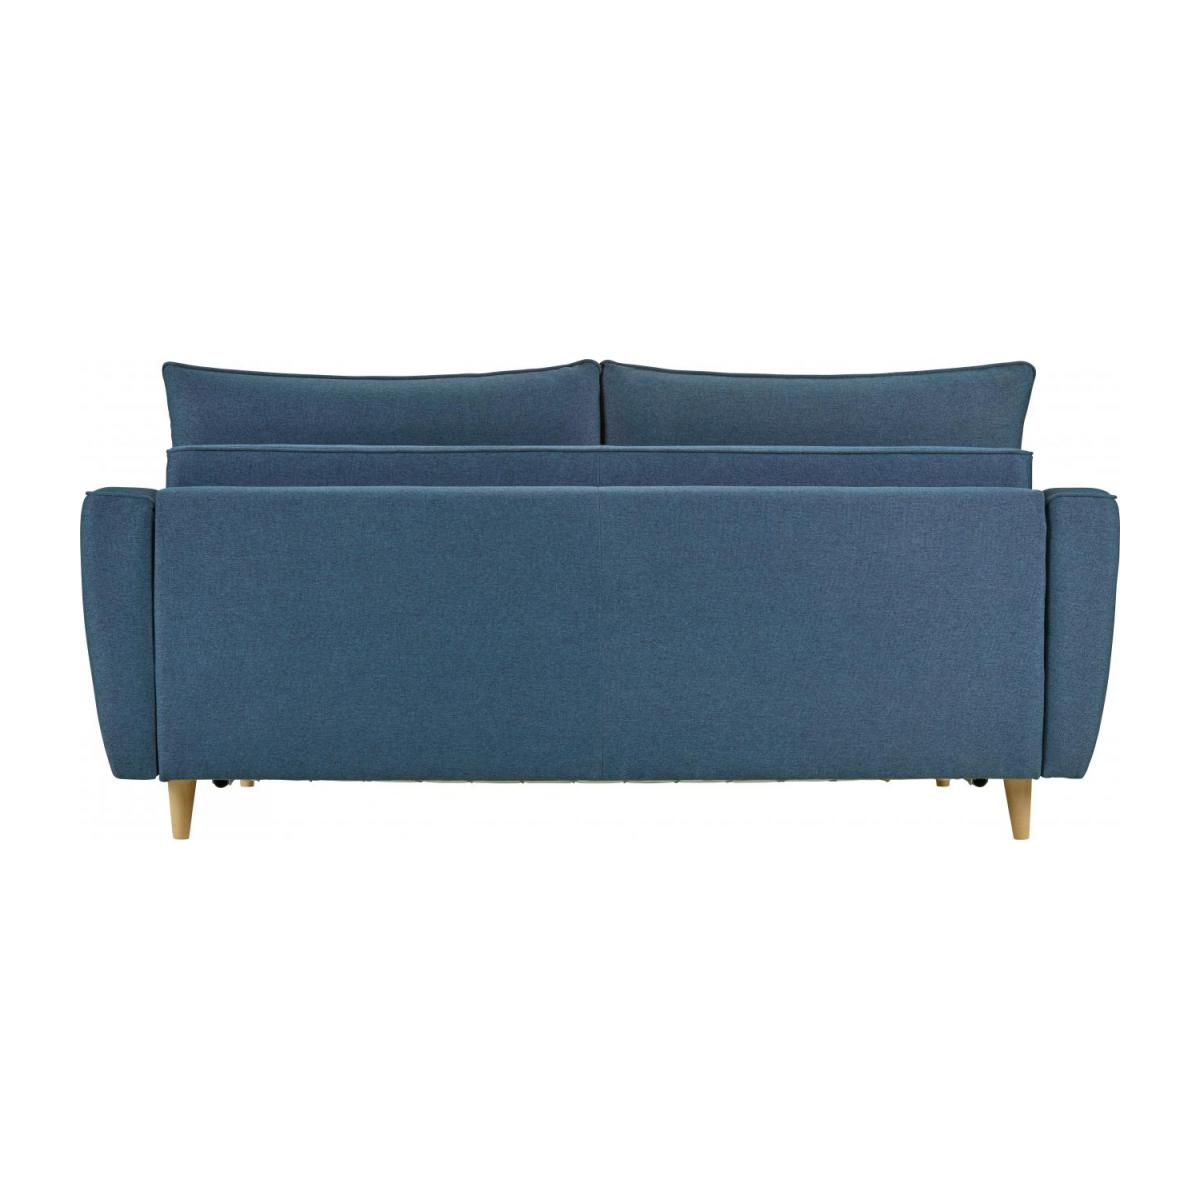 3 seater Sofa Bed with slatted base n°4